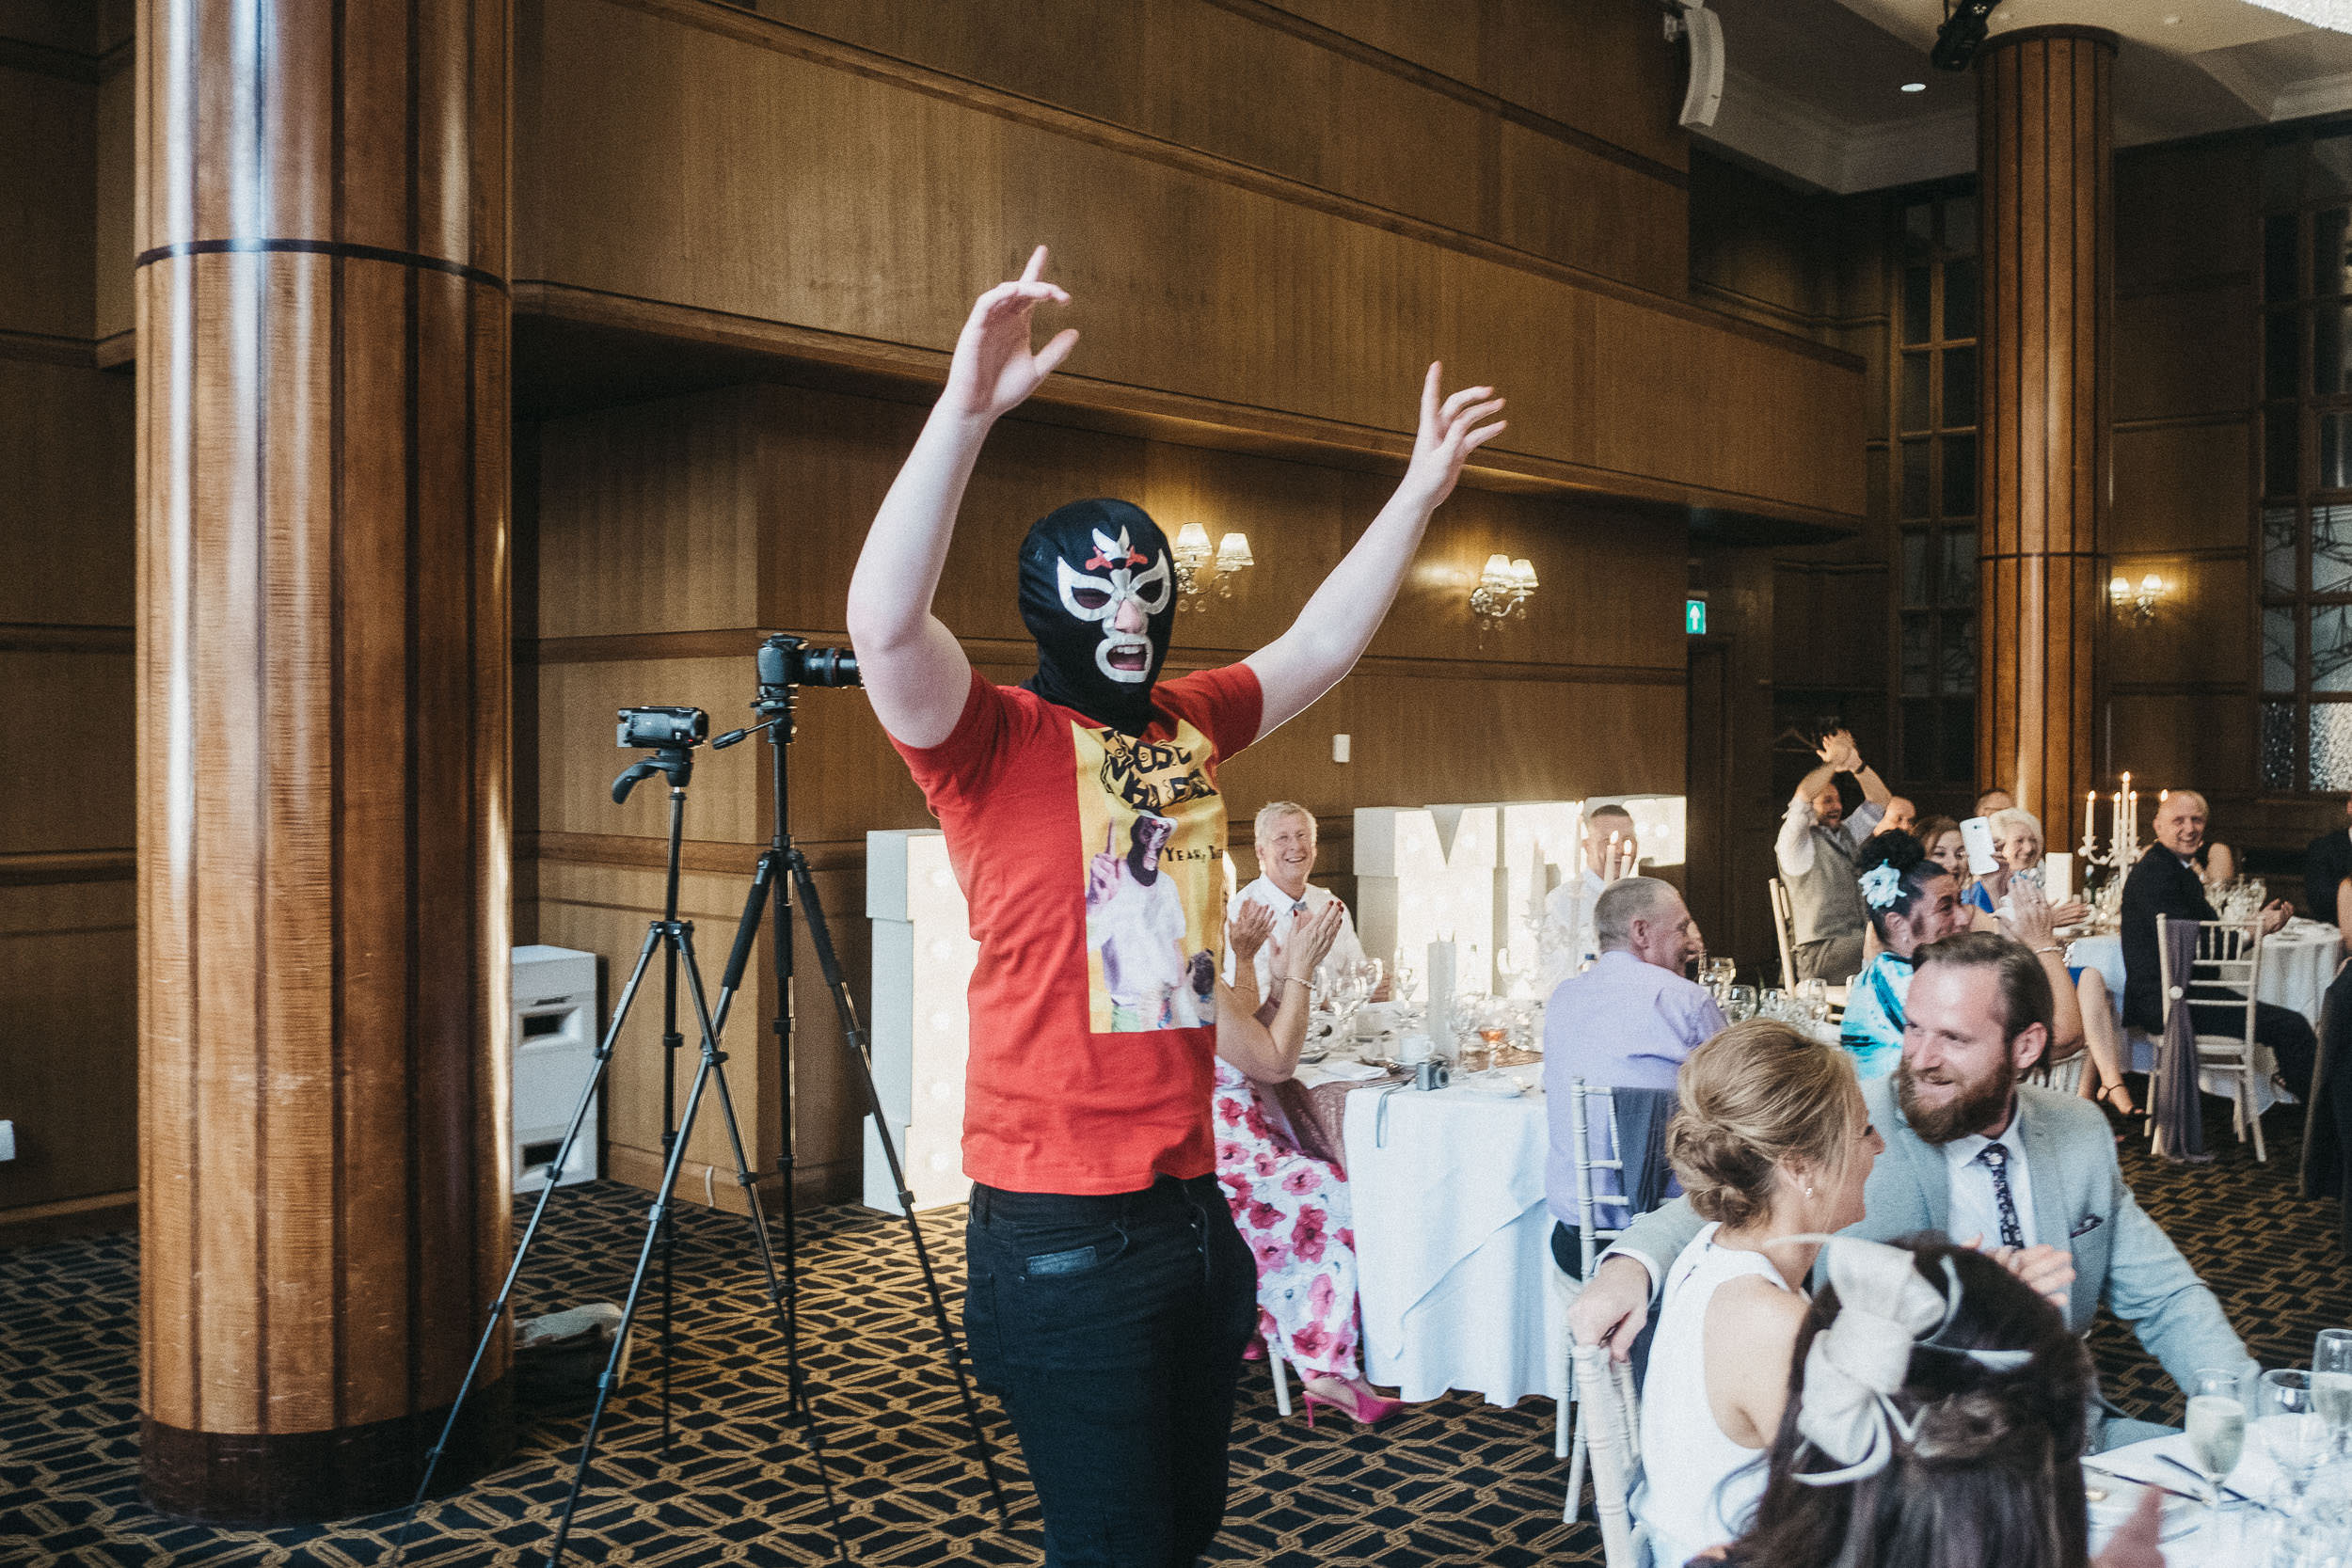 Mexican wrestler waving arms in the air at the Vermont Hotel